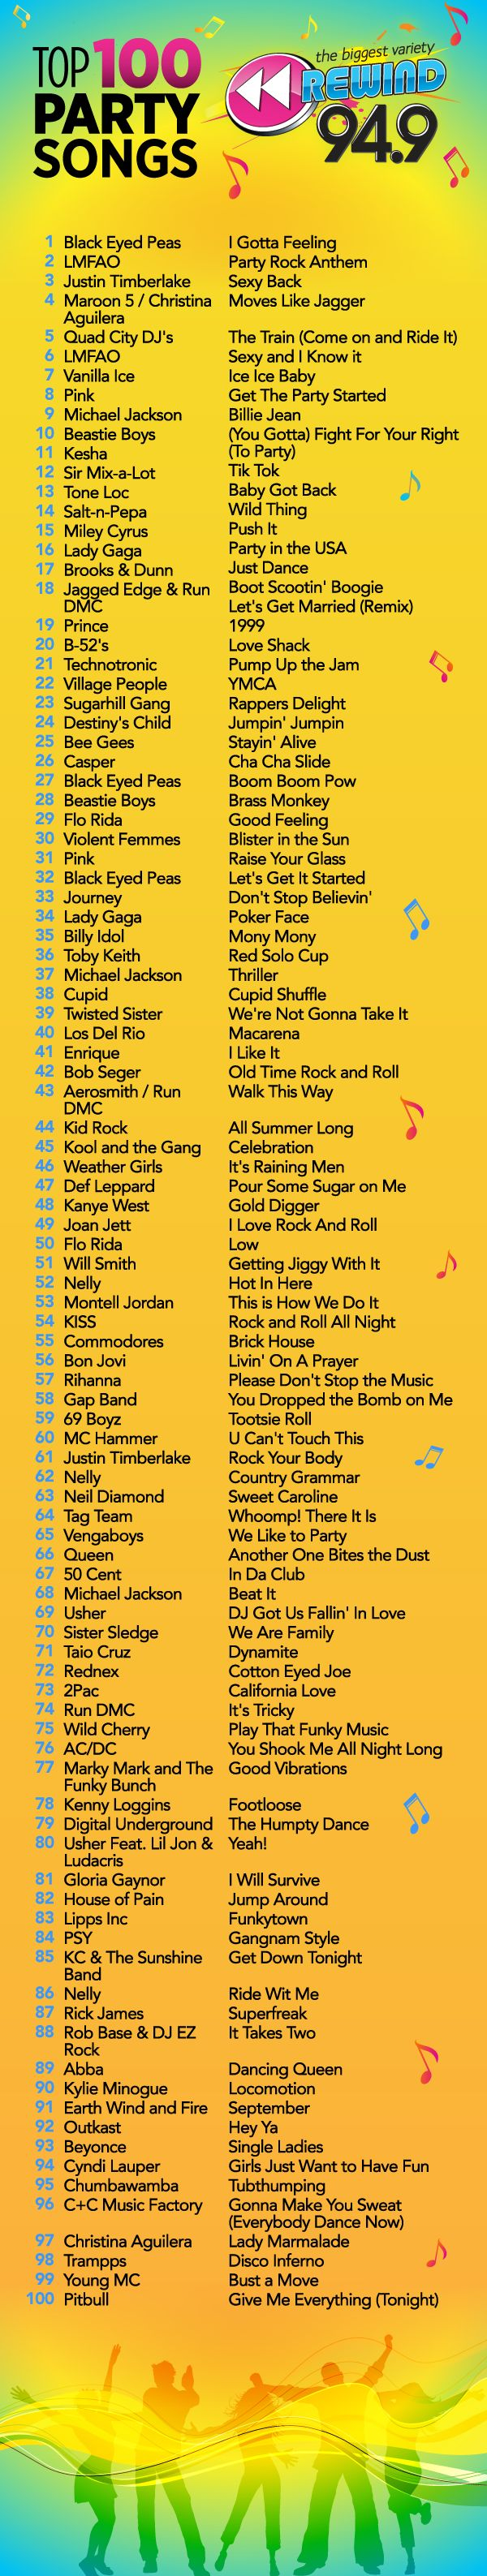 Rewind 94.9 Top 100 Party Songs